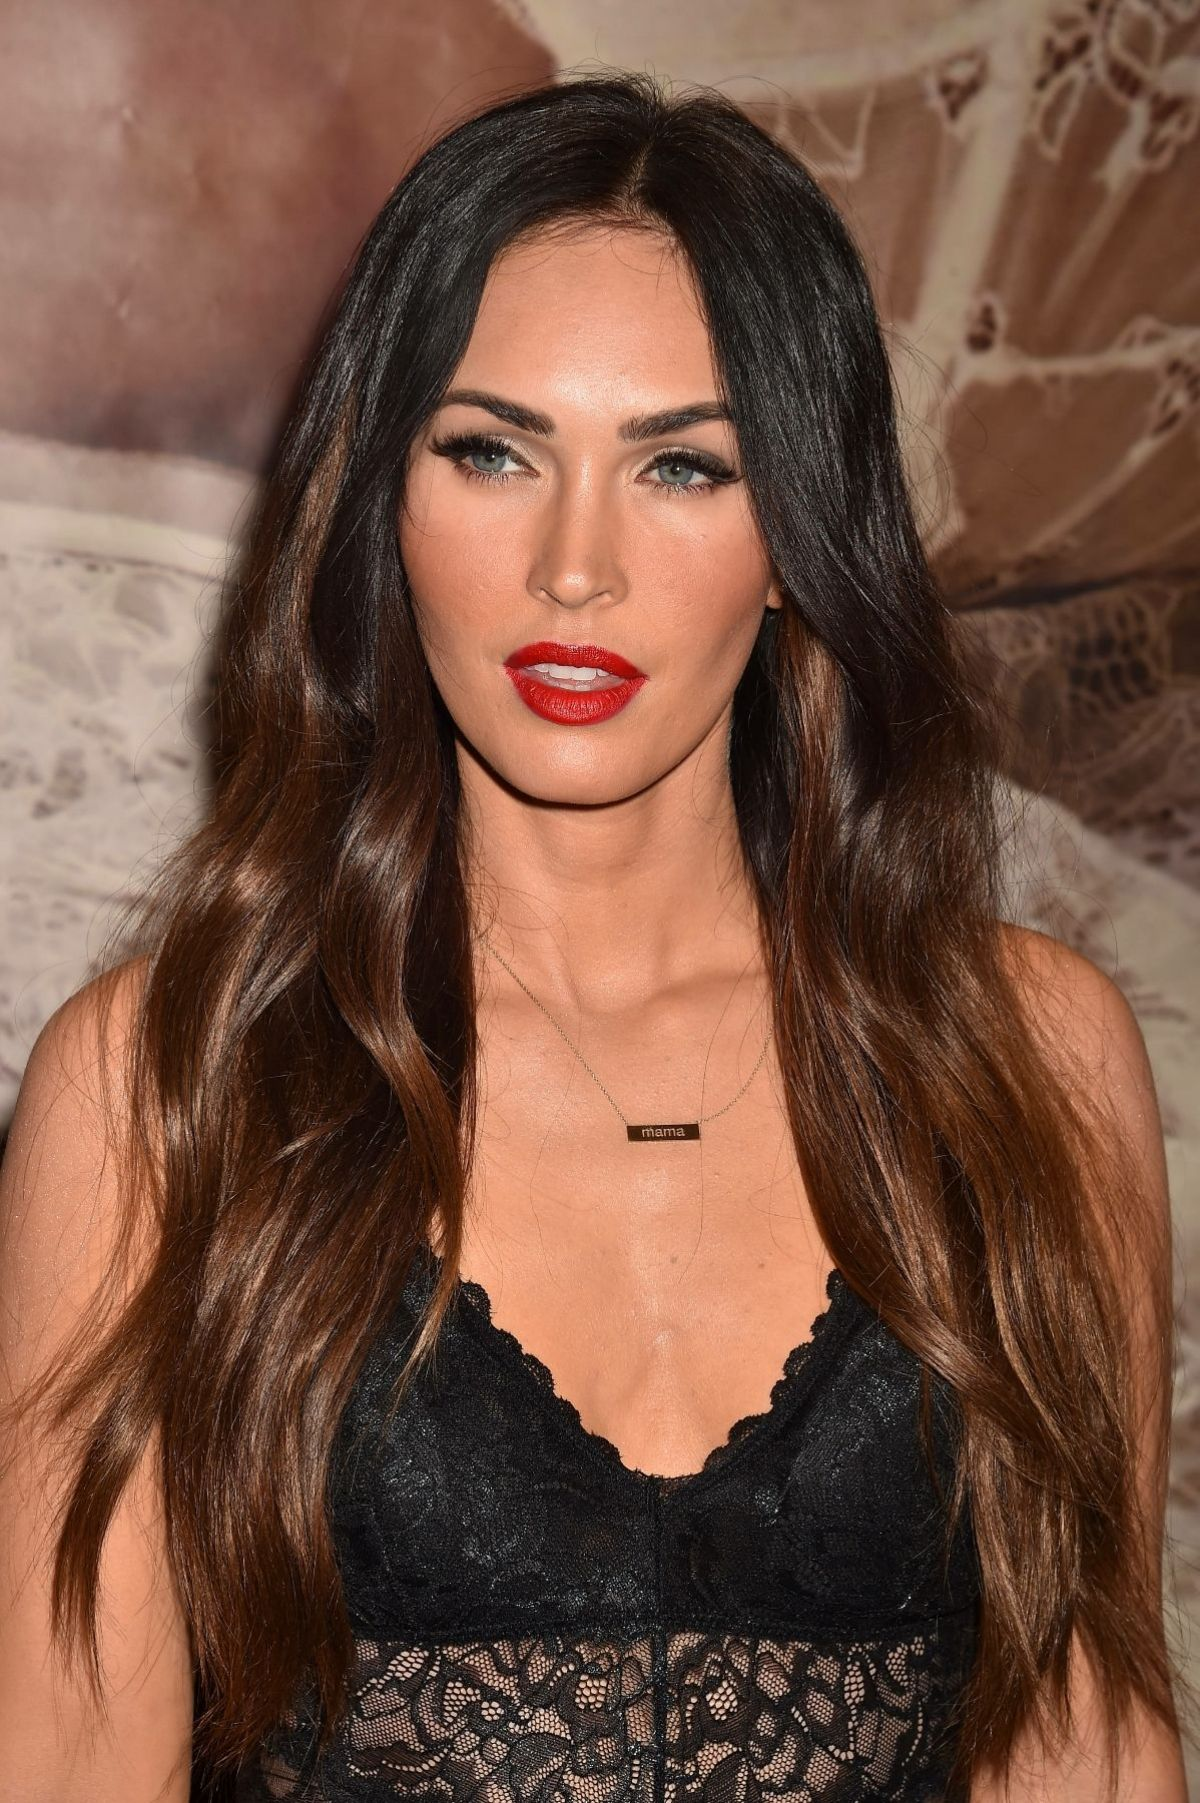 MEGAN FOX at Forever 21 in Glendale 03/23/2018 - HawtCelebs